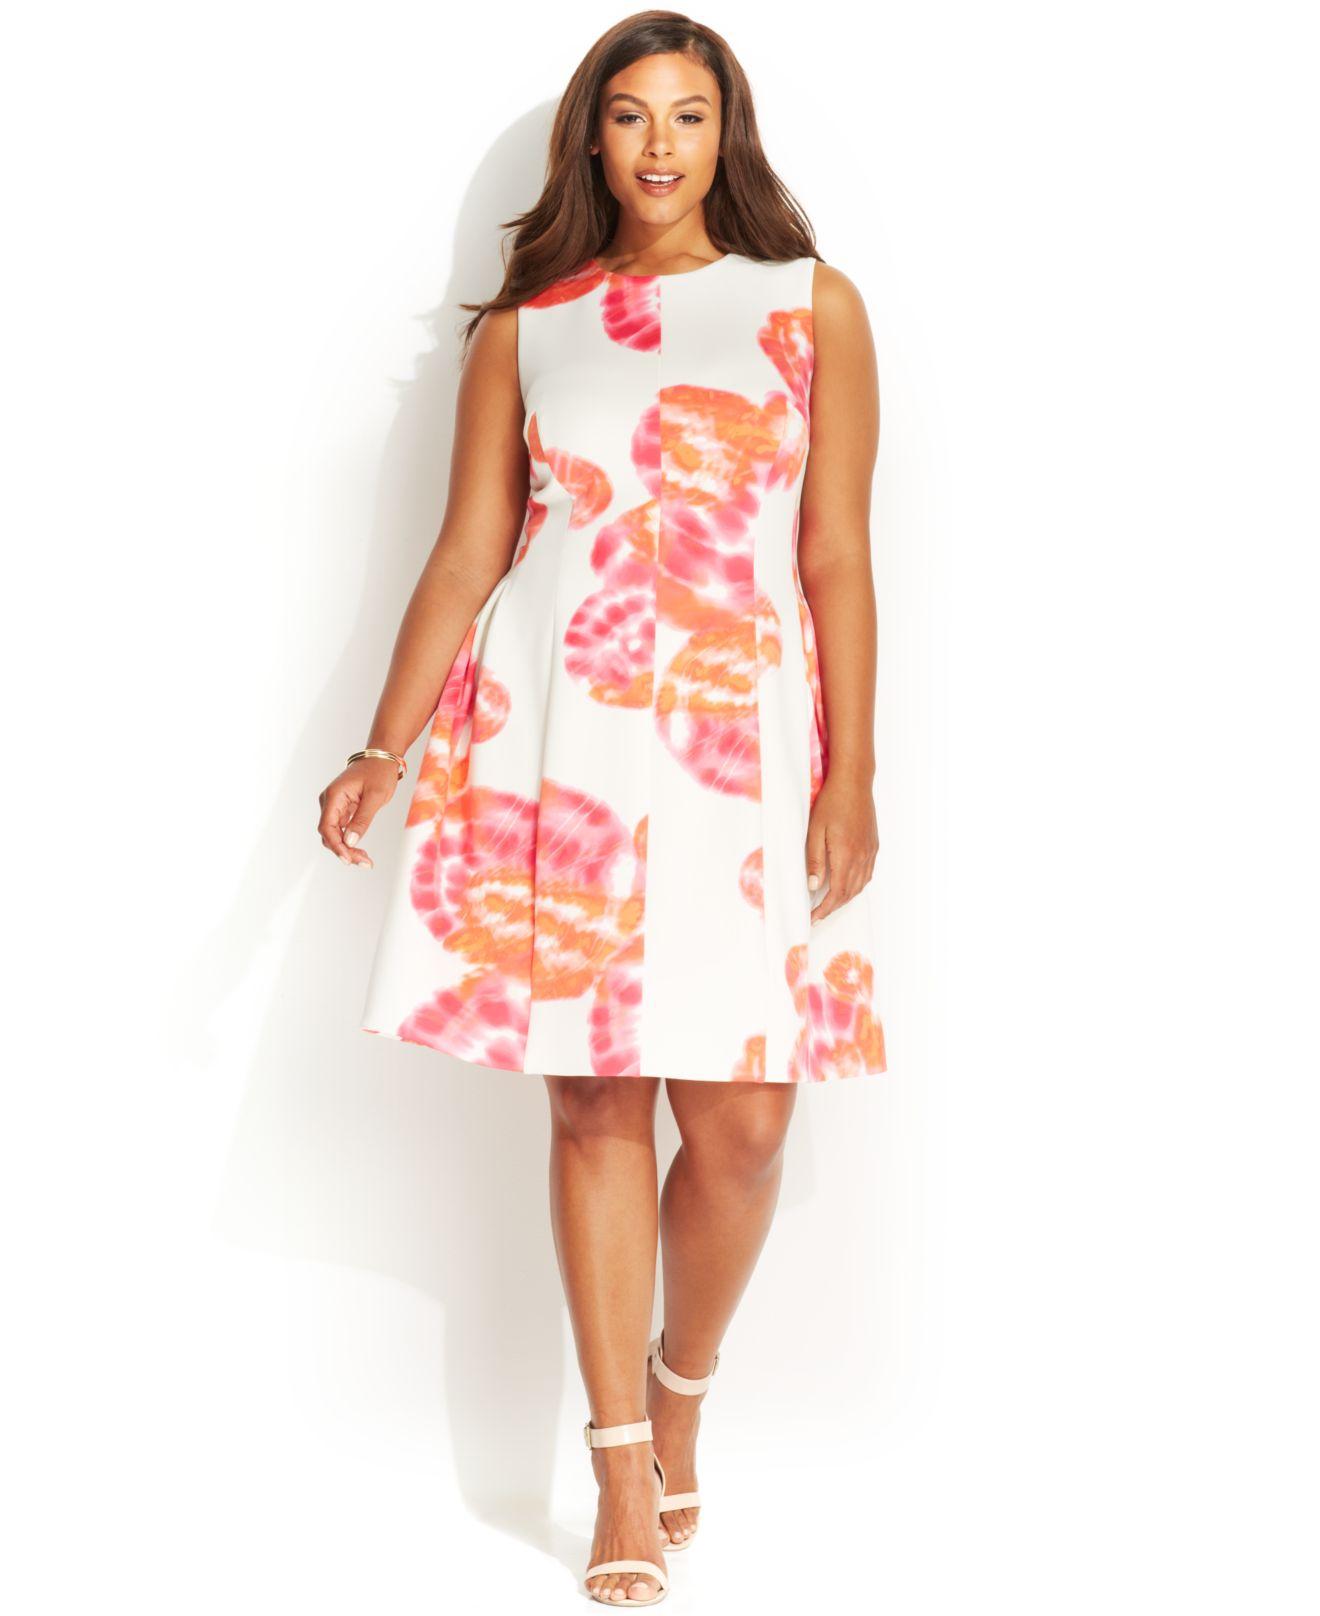 83a50685e81 Lyst - Calvin Klein Plus Size Floral-Print Scuba Dress in Pink